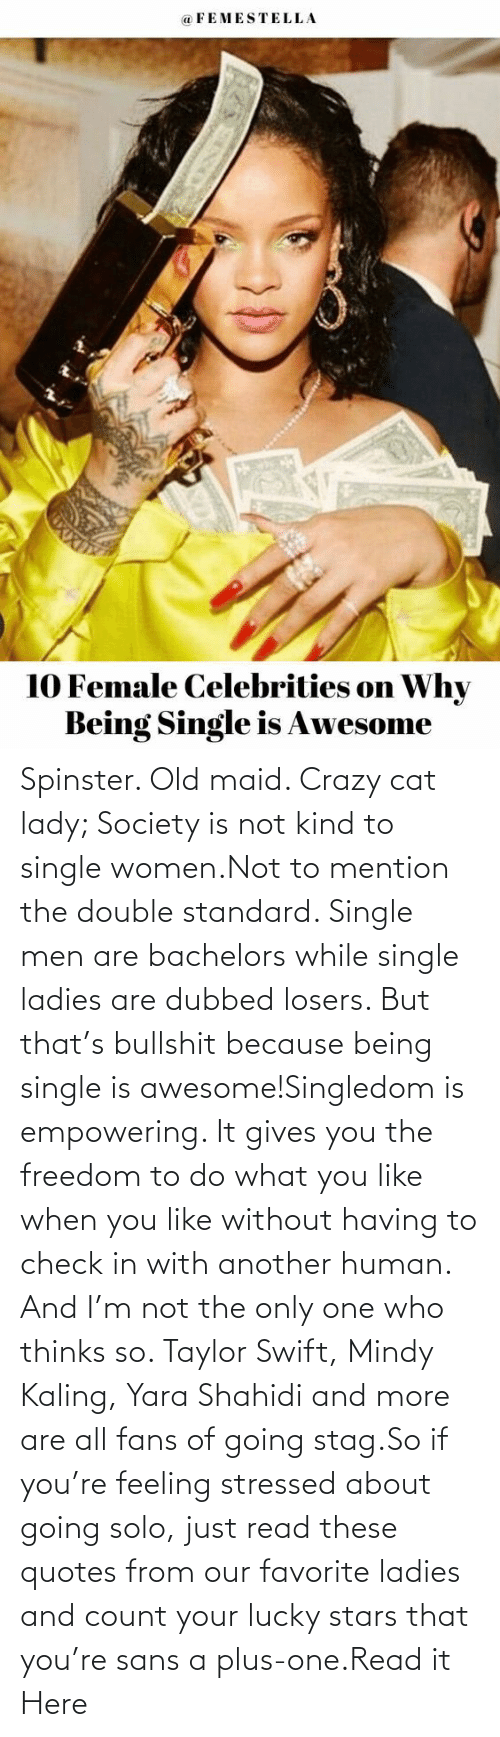 ladies: Spinster. Old maid. Crazy cat lady; Society is not kind to single women.Not to mention the double standard. Single men are bachelors while single ladies are dubbed losers. But that's bullshit because being single is awesome!Singledom is empowering. It gives you the freedom to do what you like when you like without having to check in with another human. And I'm not the only one who thinks so. Taylor Swift, Mindy Kaling, Yara Shahidi and more are all fans of going stag.So if you're feeling stressed about going solo, just read these quotes from our favorite ladies and count your lucky stars that you're sans a plus-one.Read it Here